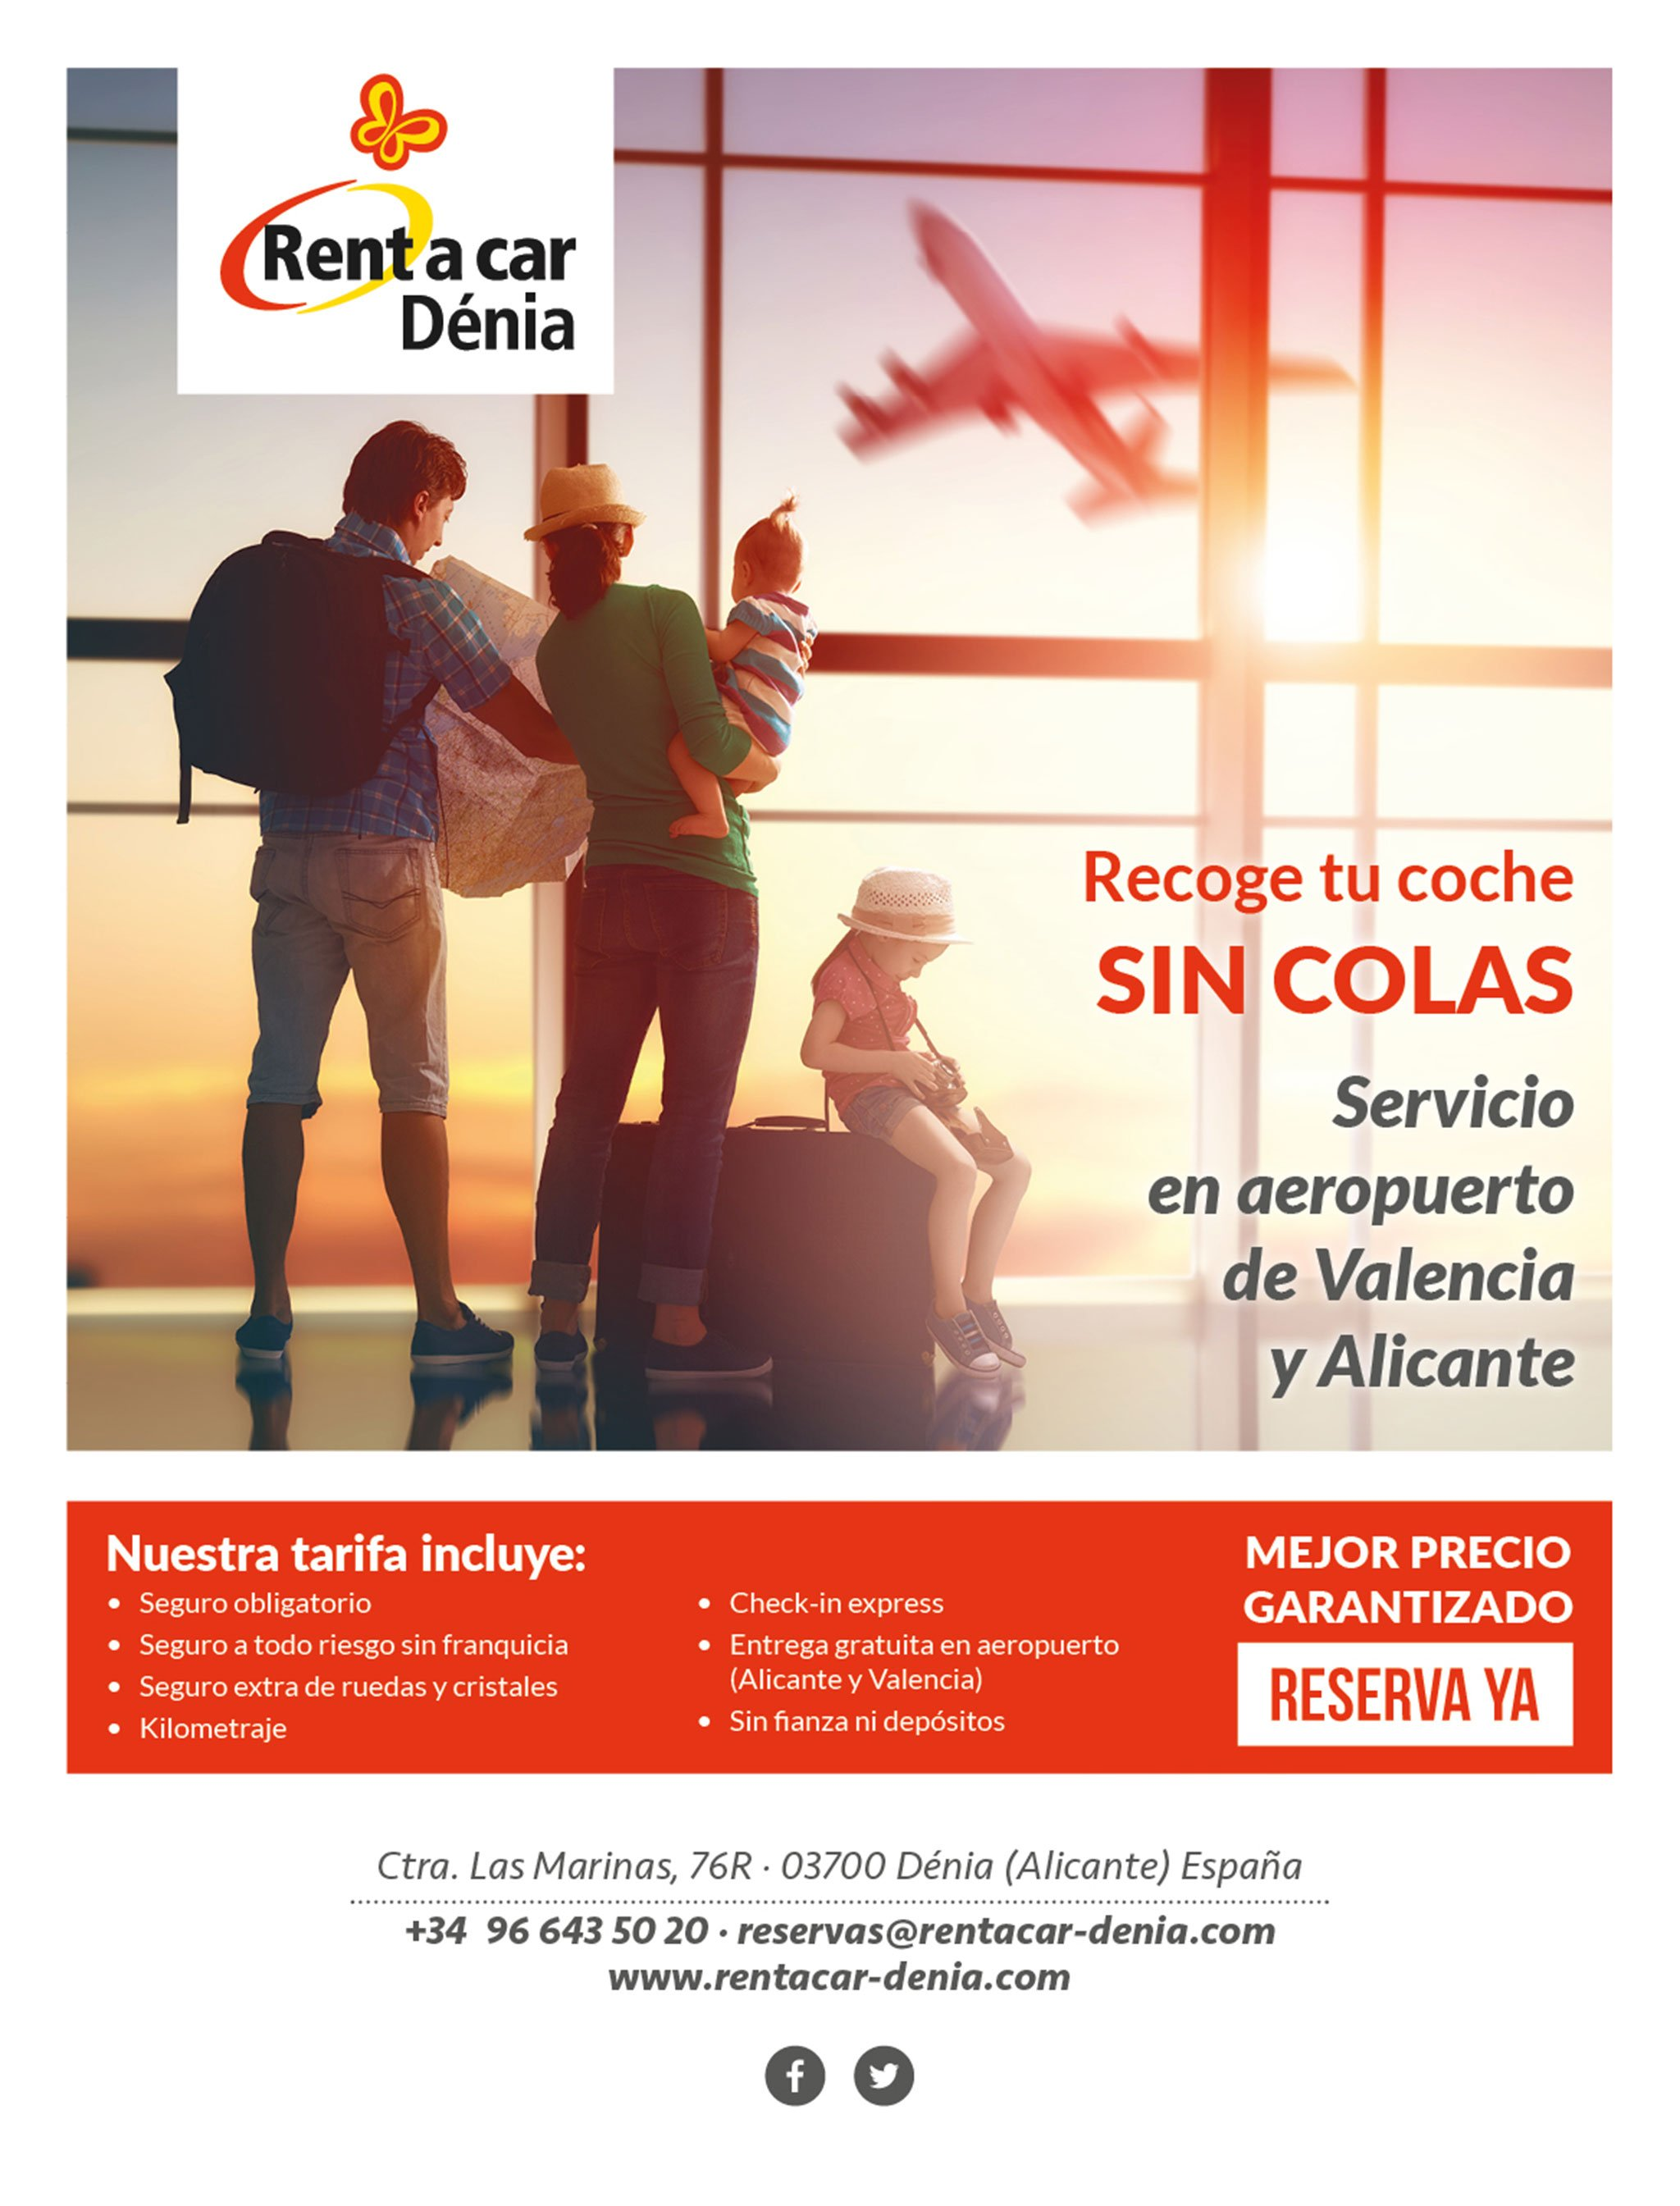 Trust Rent a Car Dénia and rent your vehicle with all the comforts